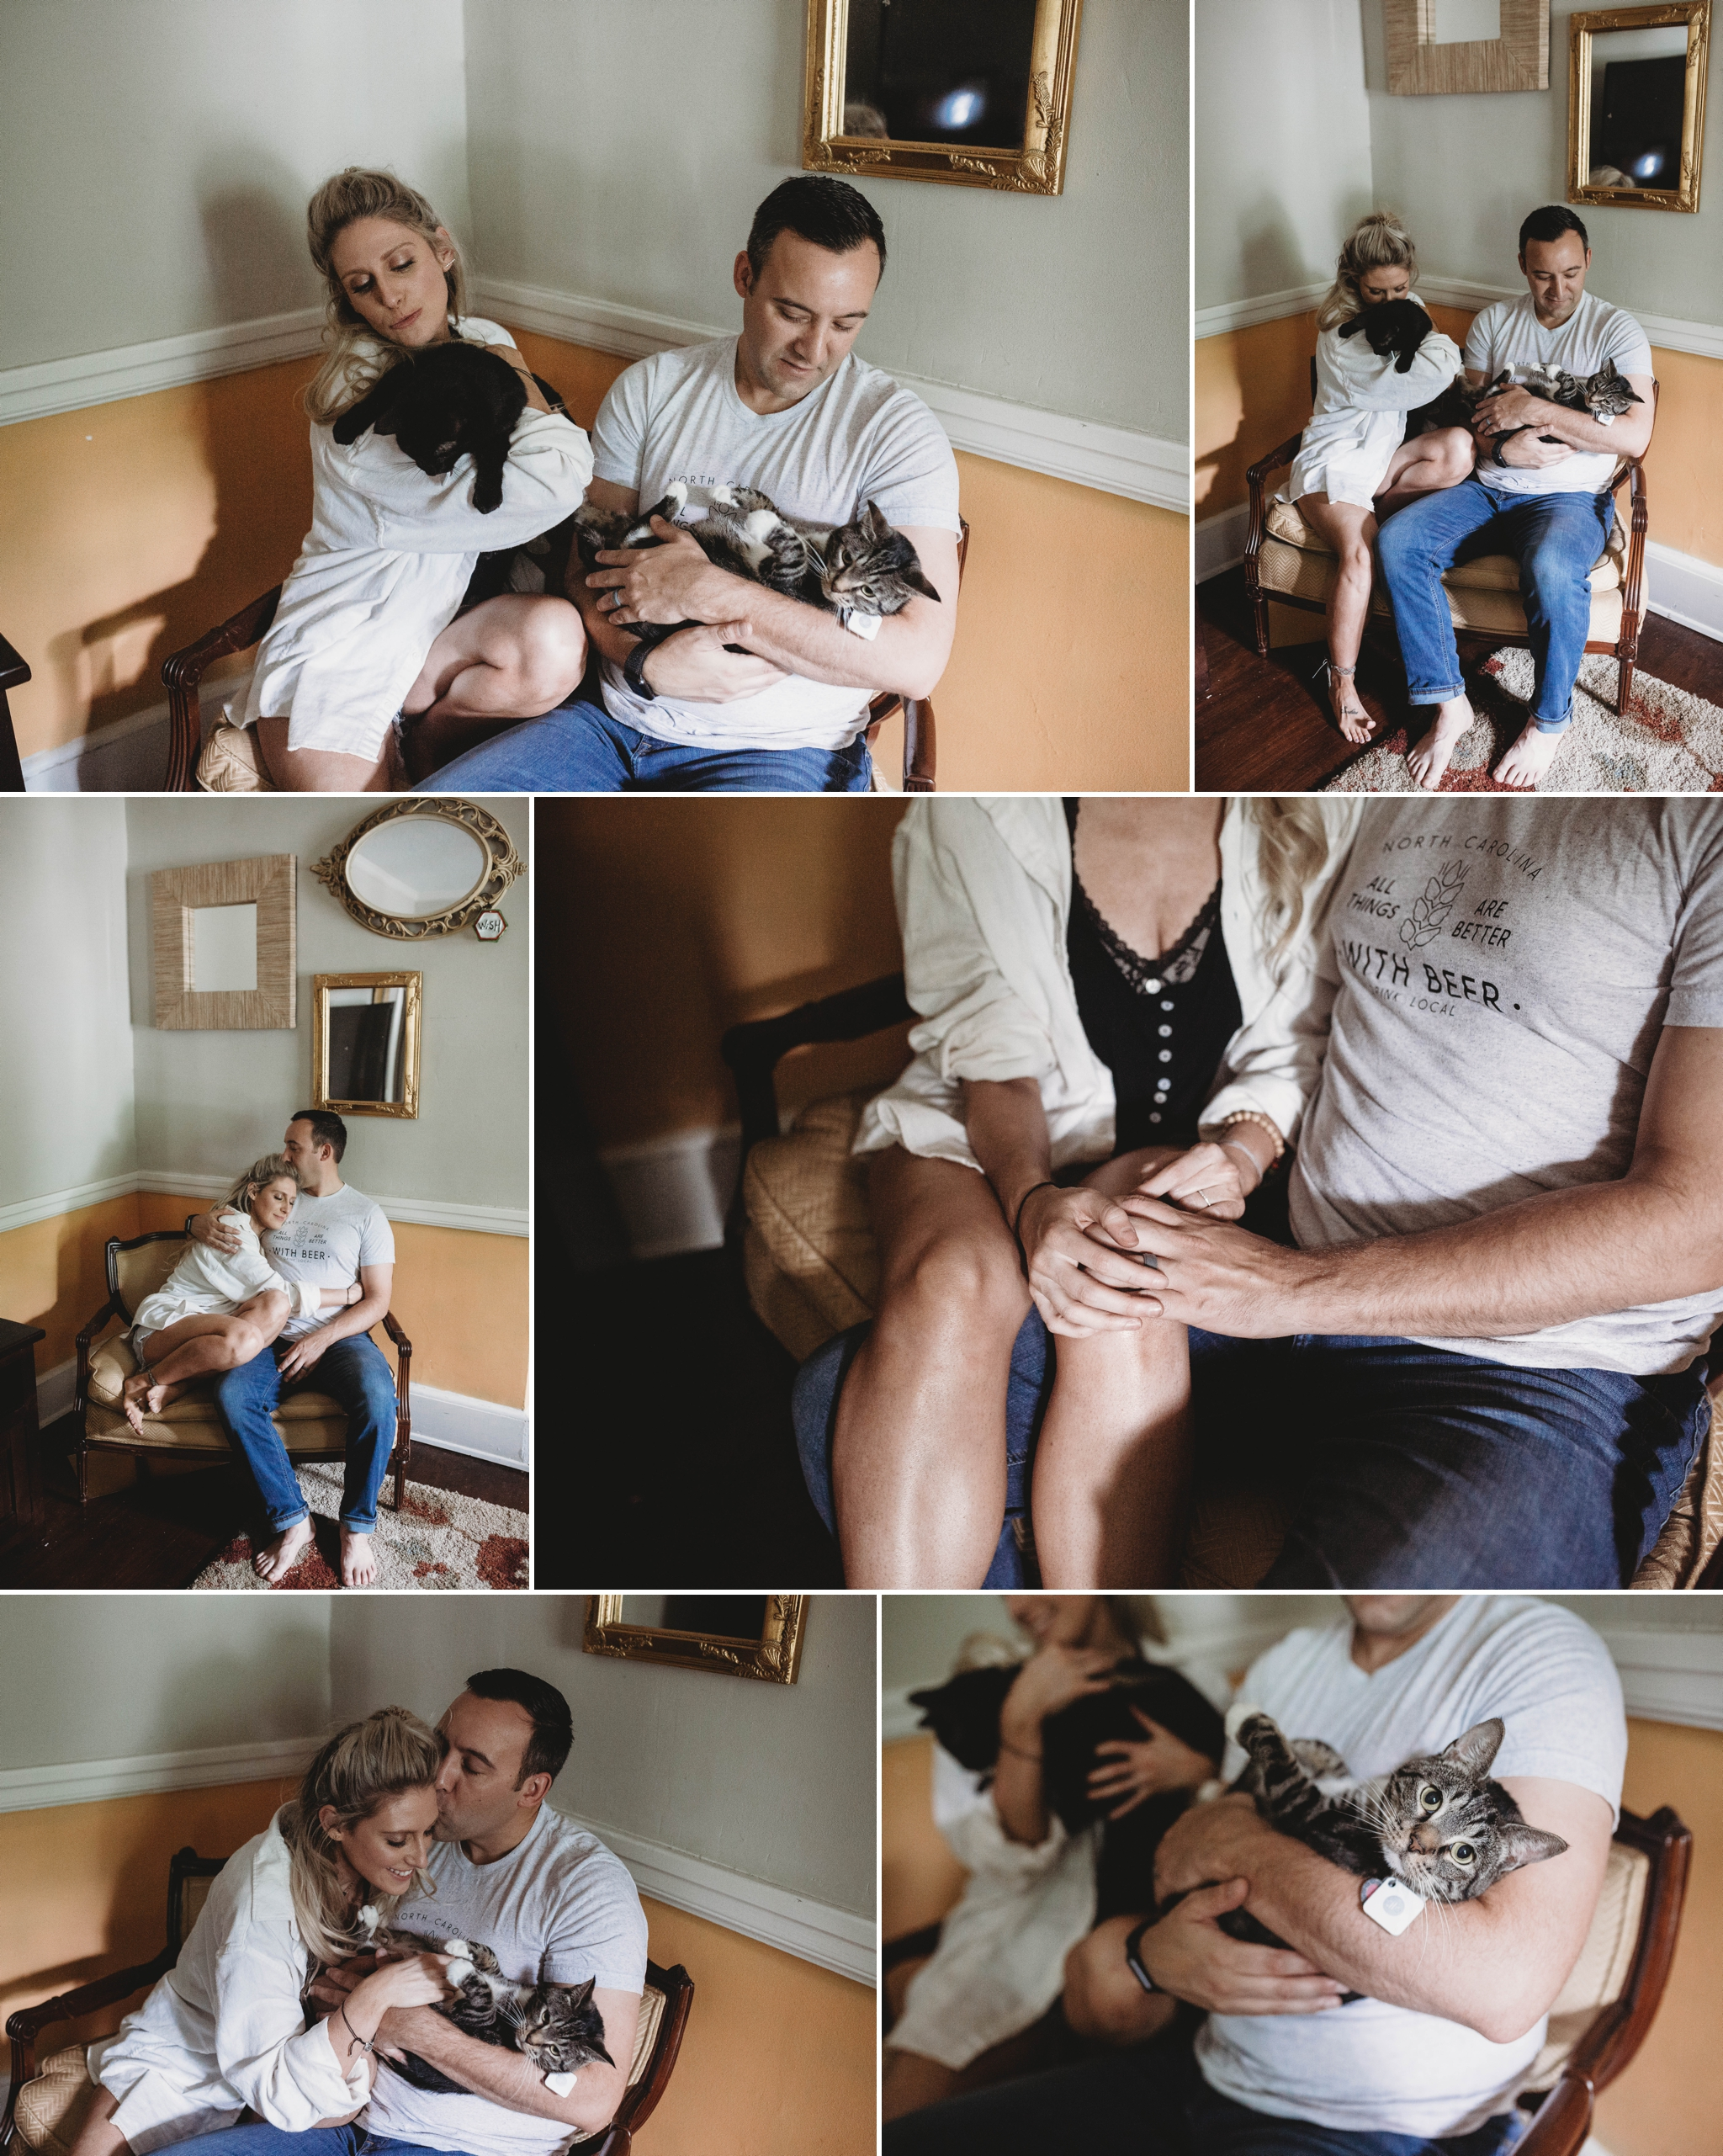 Brittany + Andrew - In Home Lifestyle Photography Session with cats - Fayetteville, North Carolina Engagement Photographer